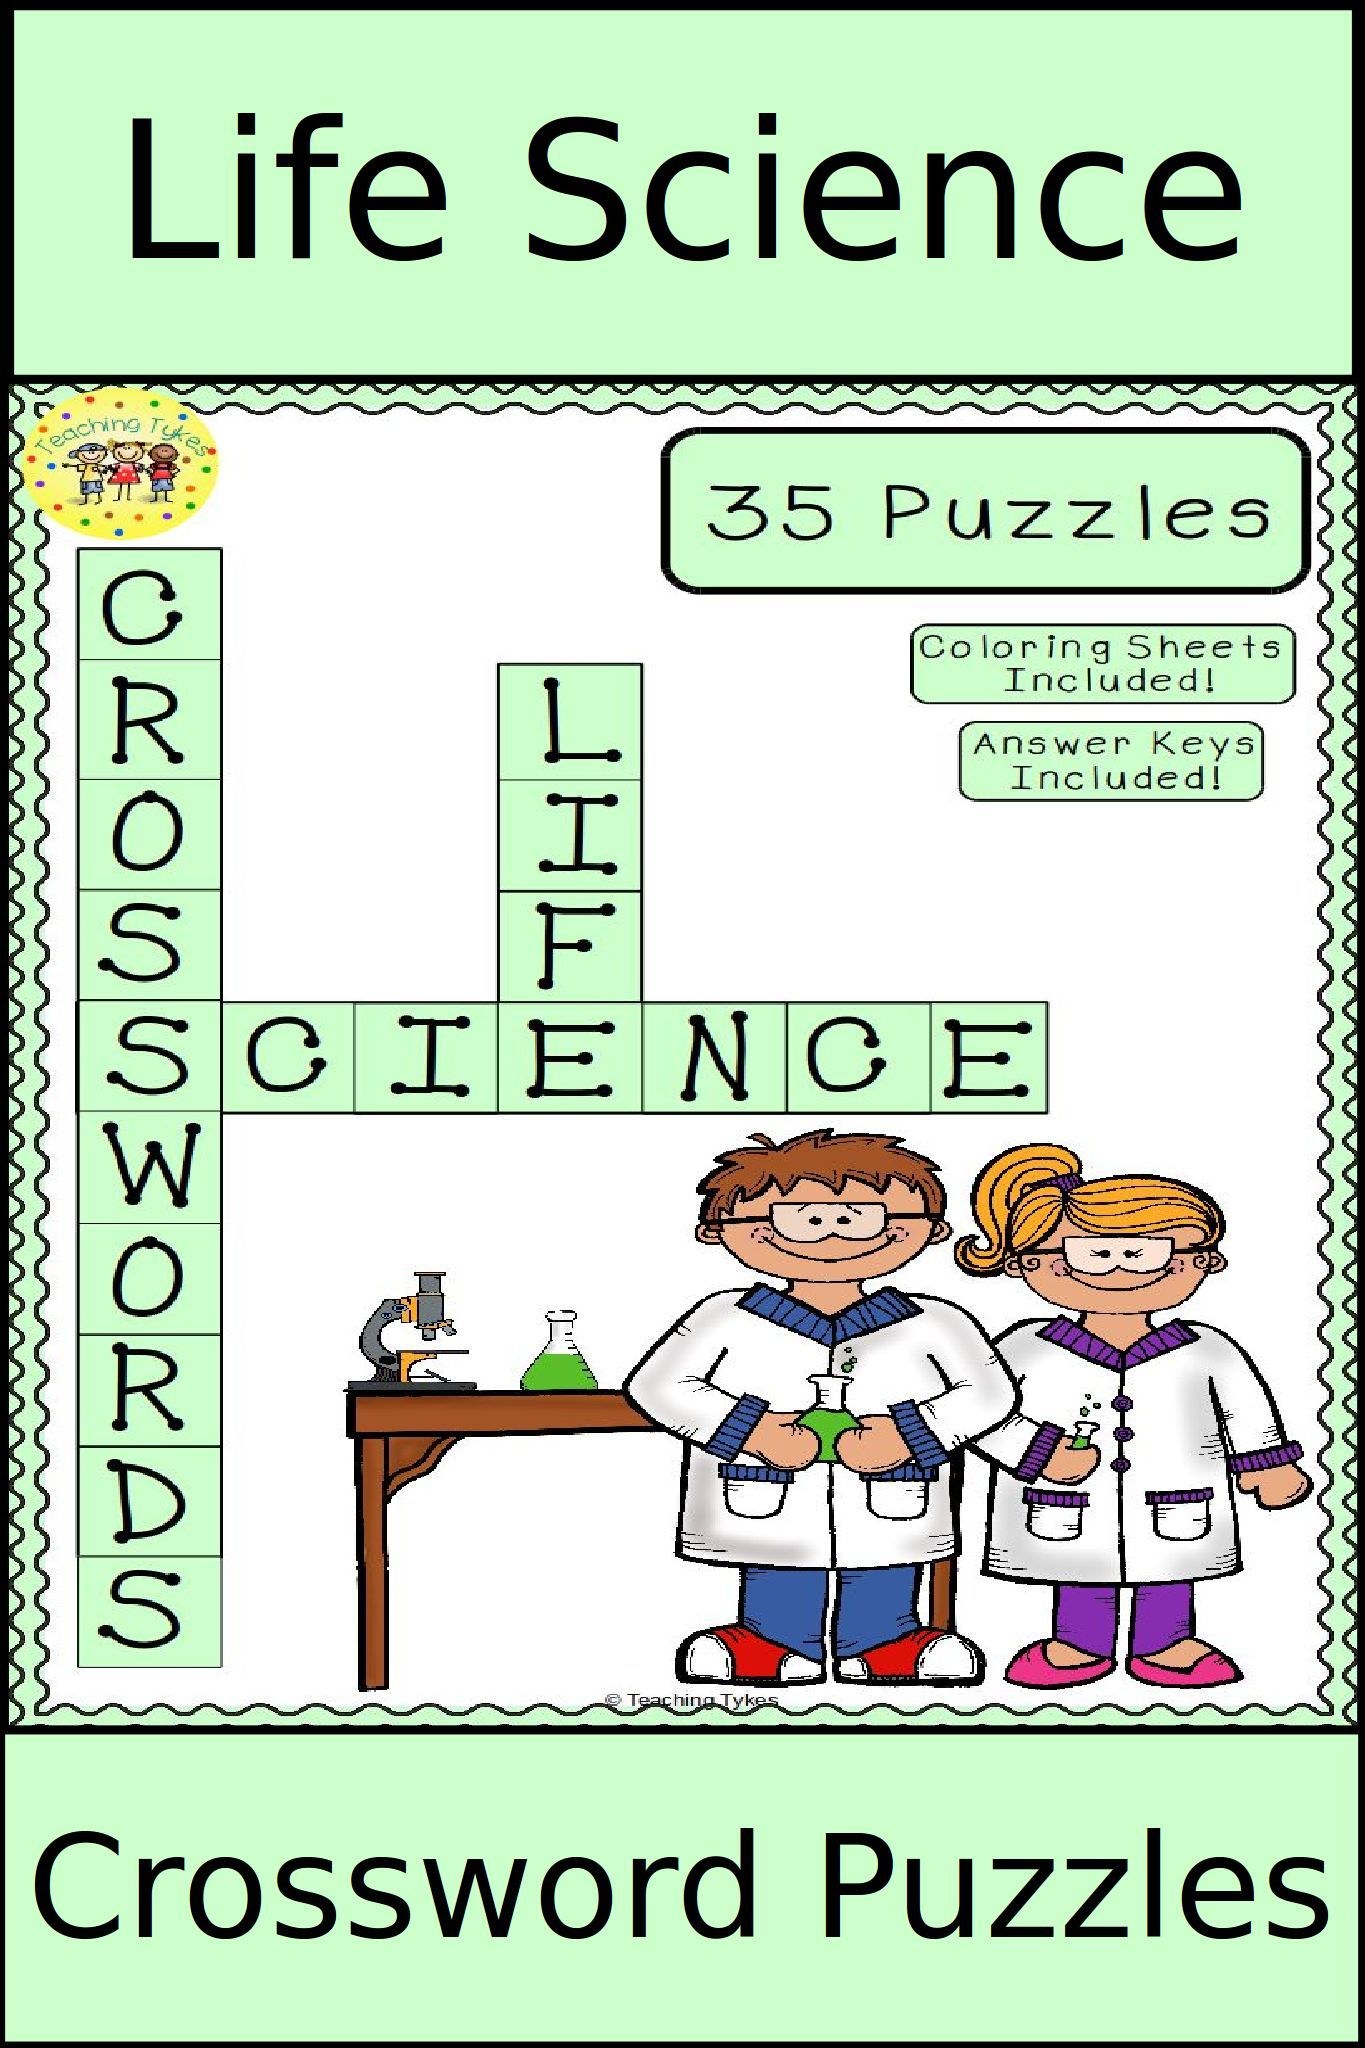 Pin On Life Science Activities Games And Ideas